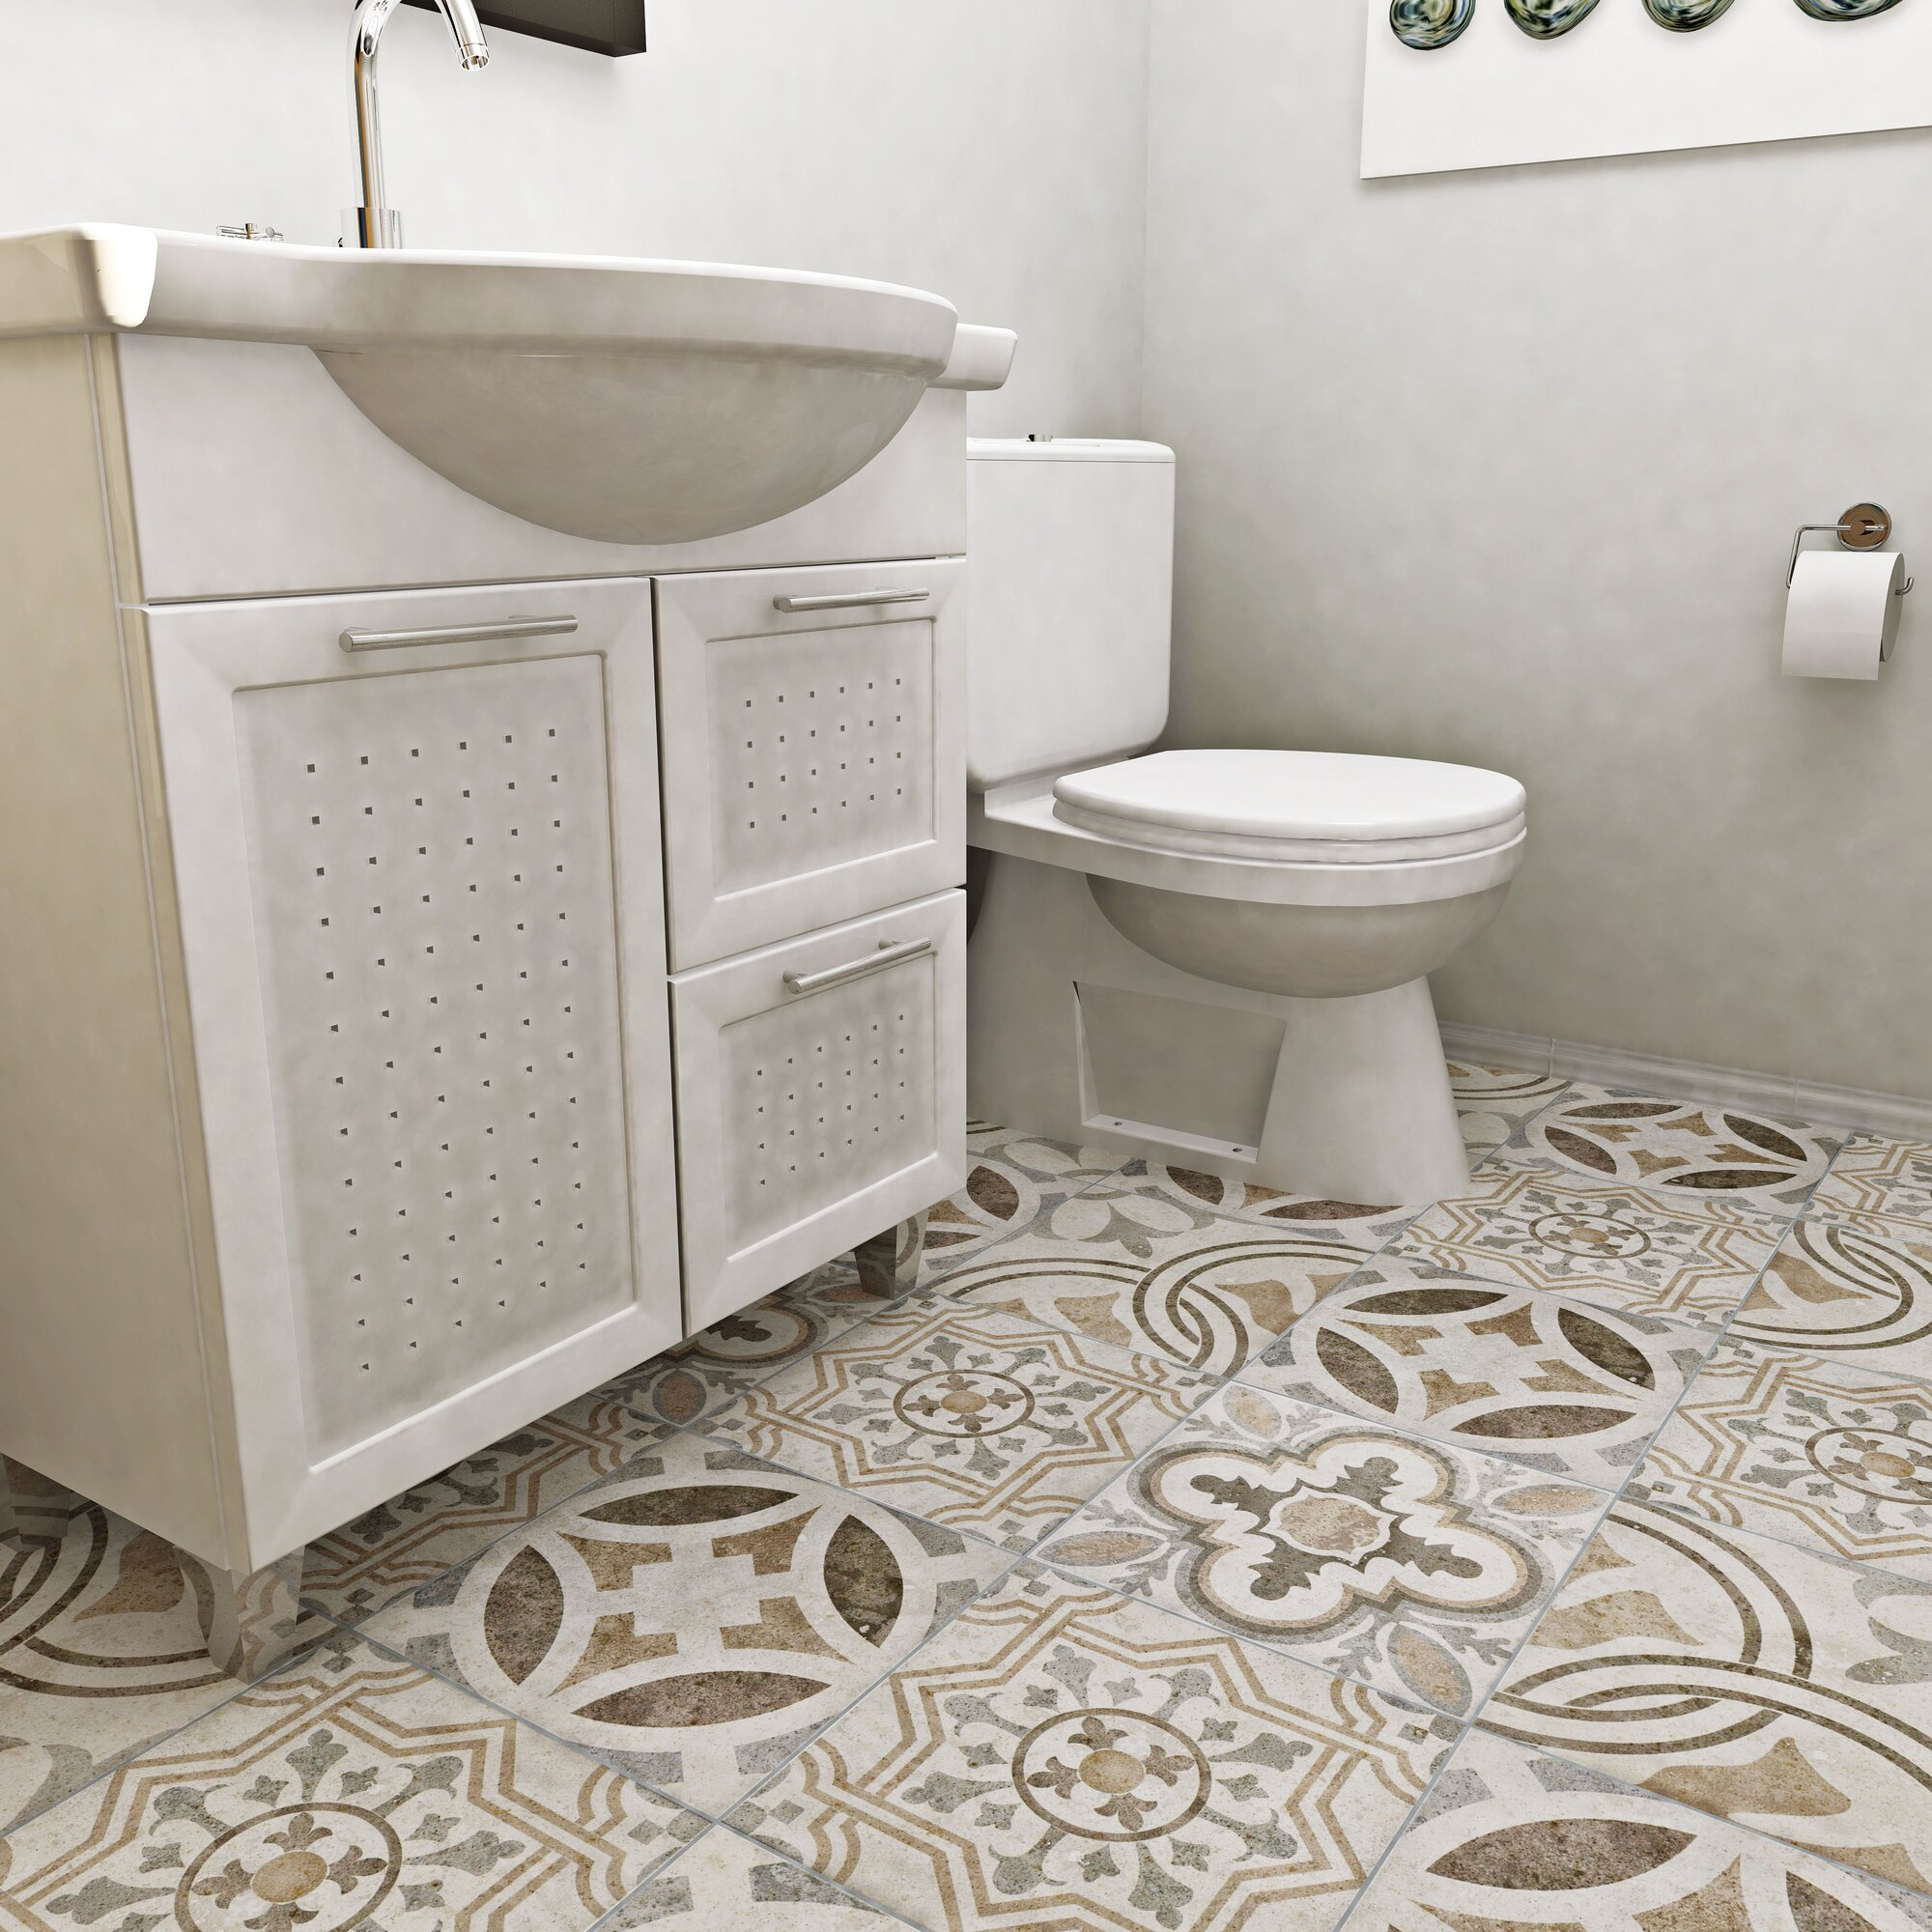 Rona ceramic tiles choice image tile flooring design ideas rona ceramic tile images tile flooring design ideas rona ceramic tiles image collections tile flooring design dailygadgetfo Gallery